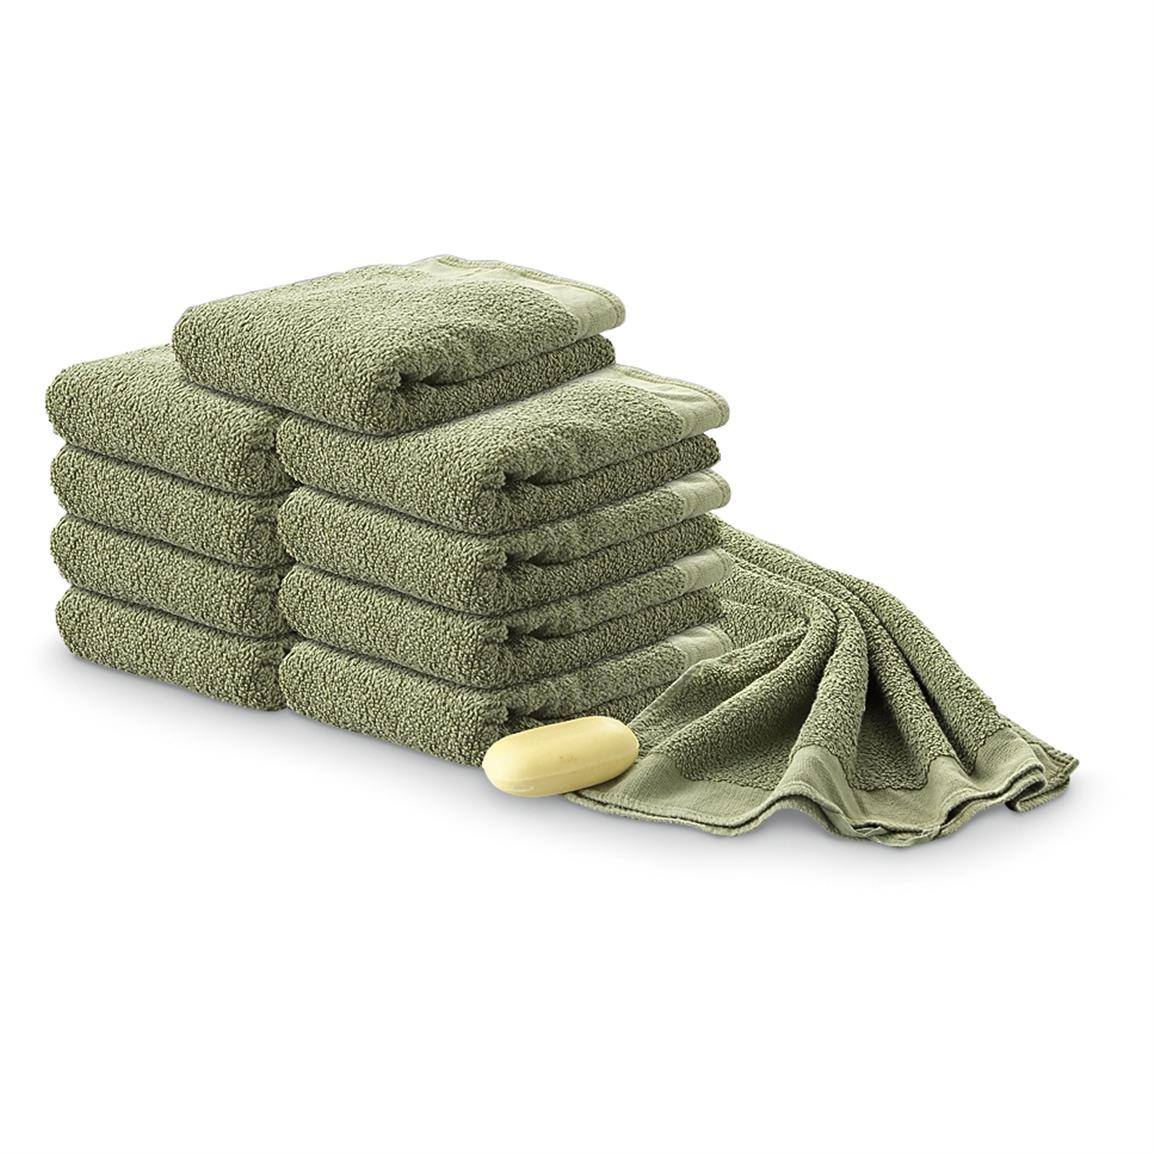 10 Used German Military Surplus Cotton Towels, Olive Drab